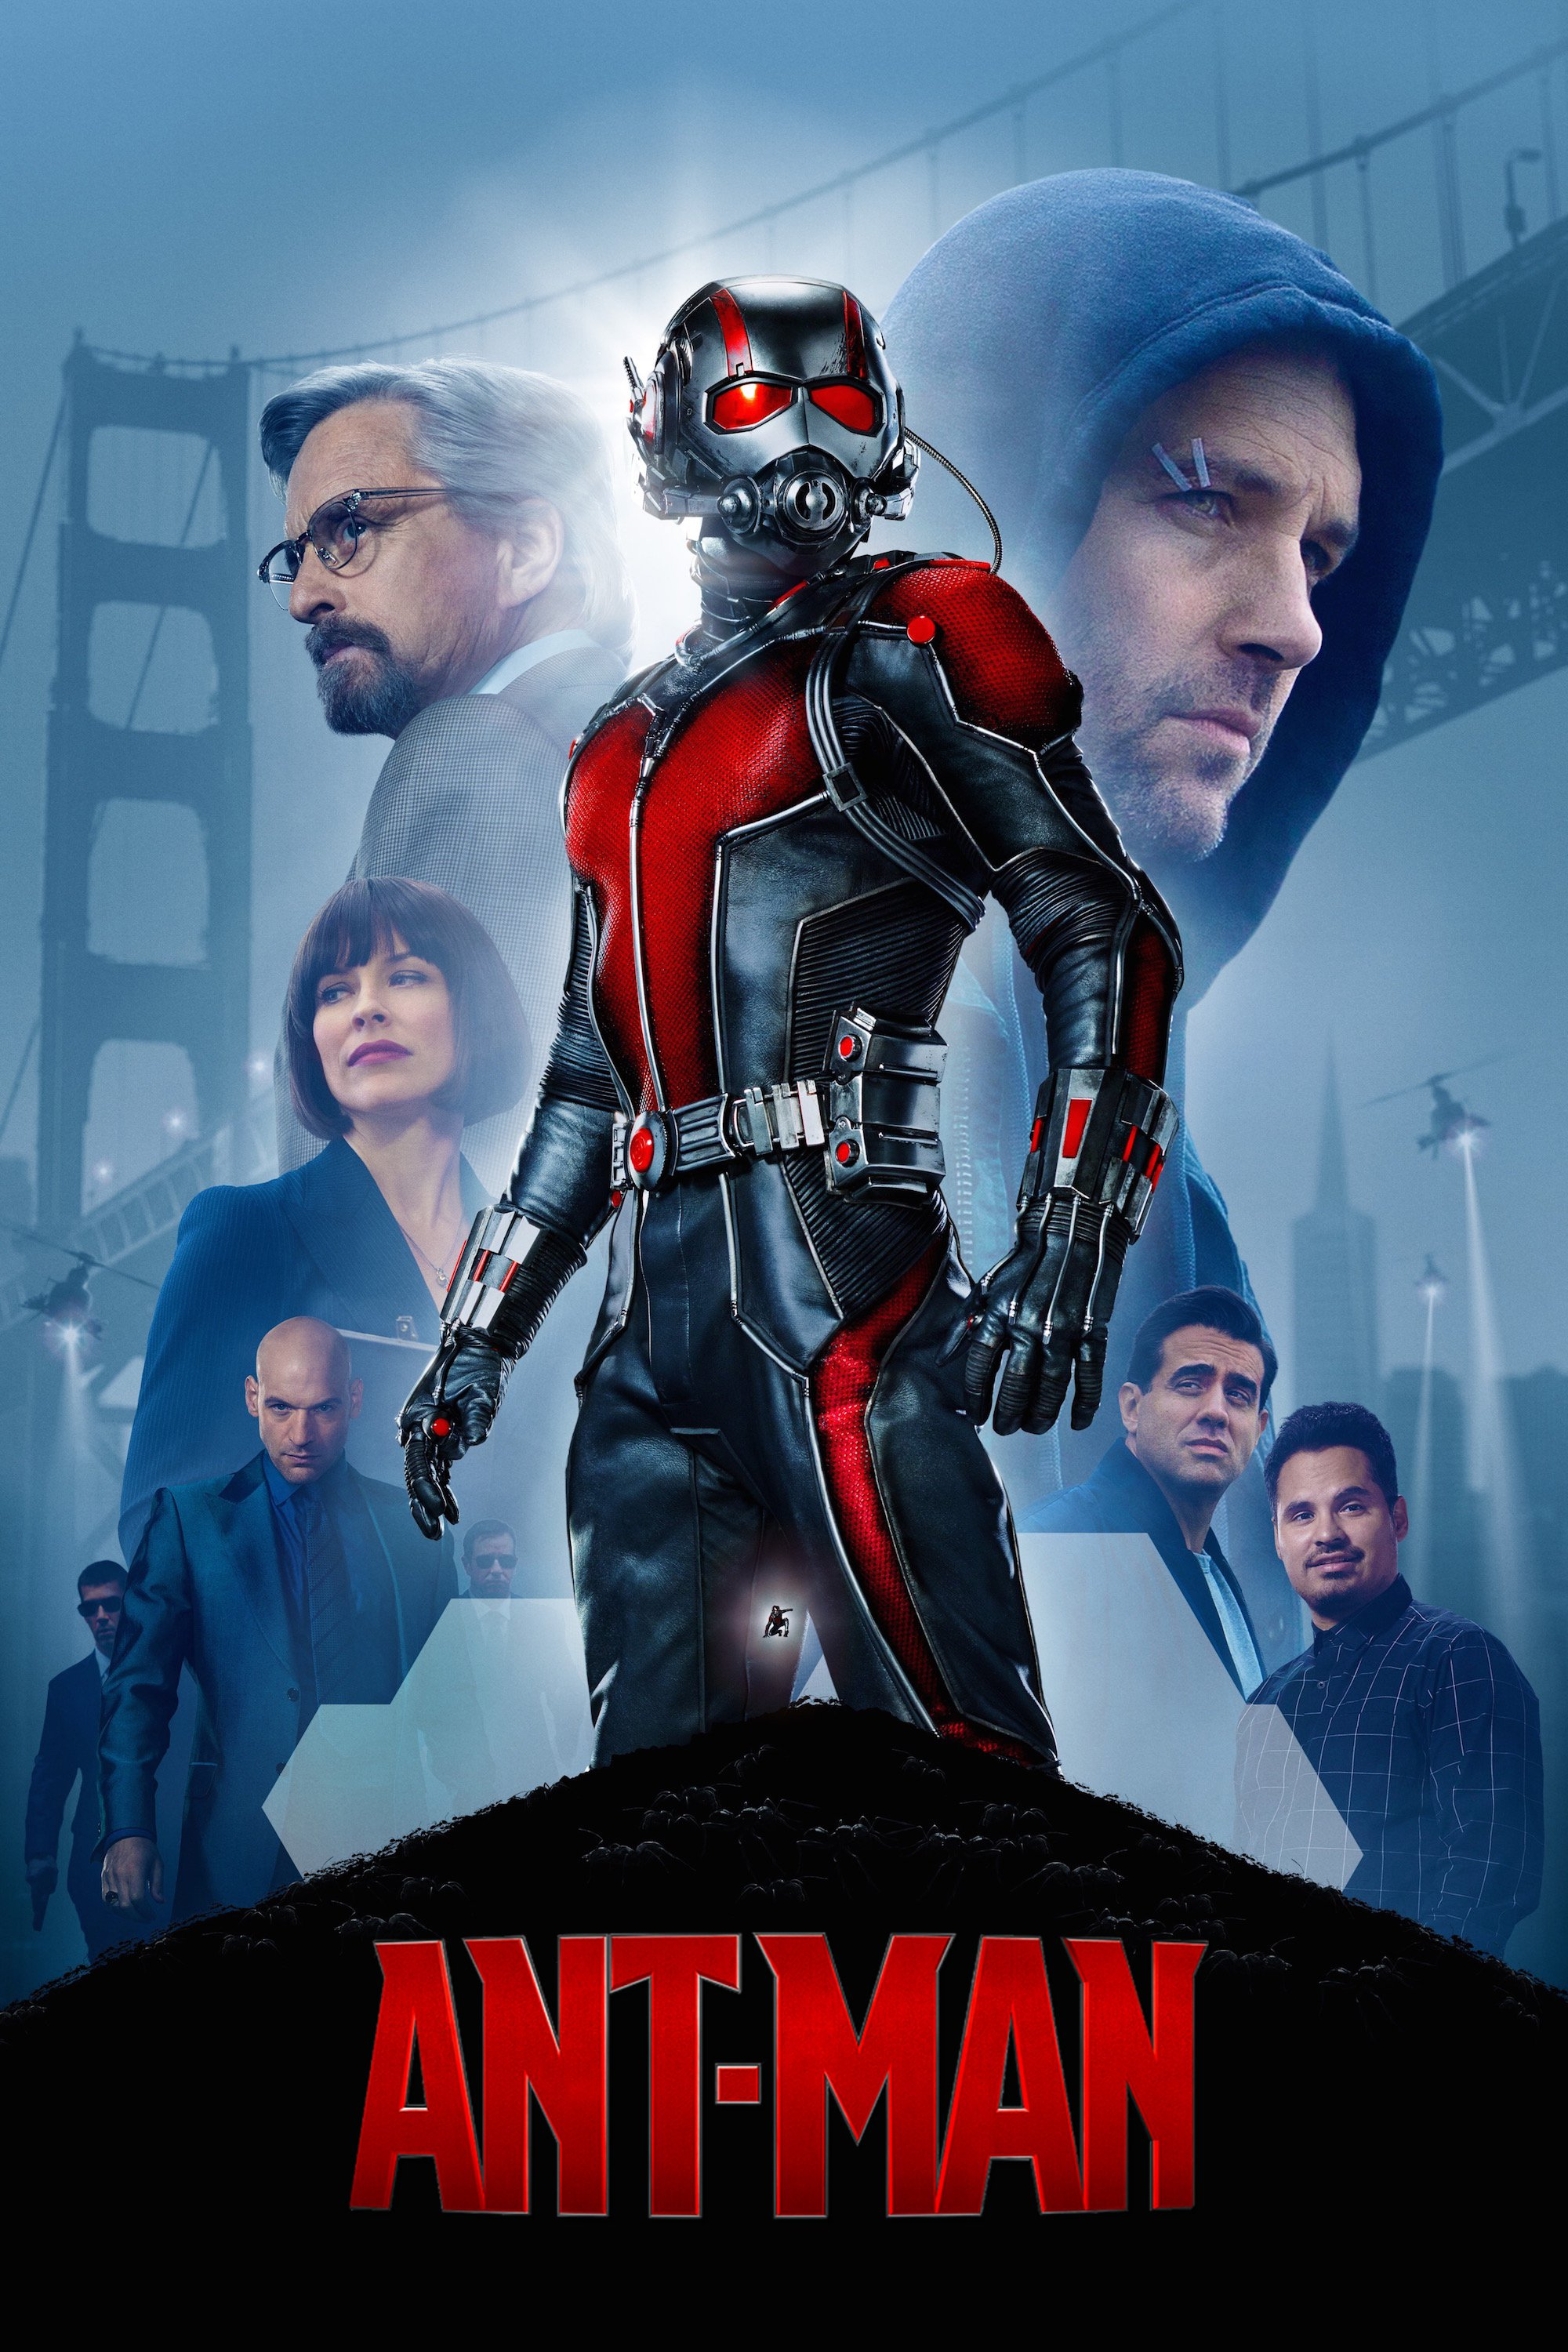 ant man poster high quality HD printable wallpapers 2015 official poster